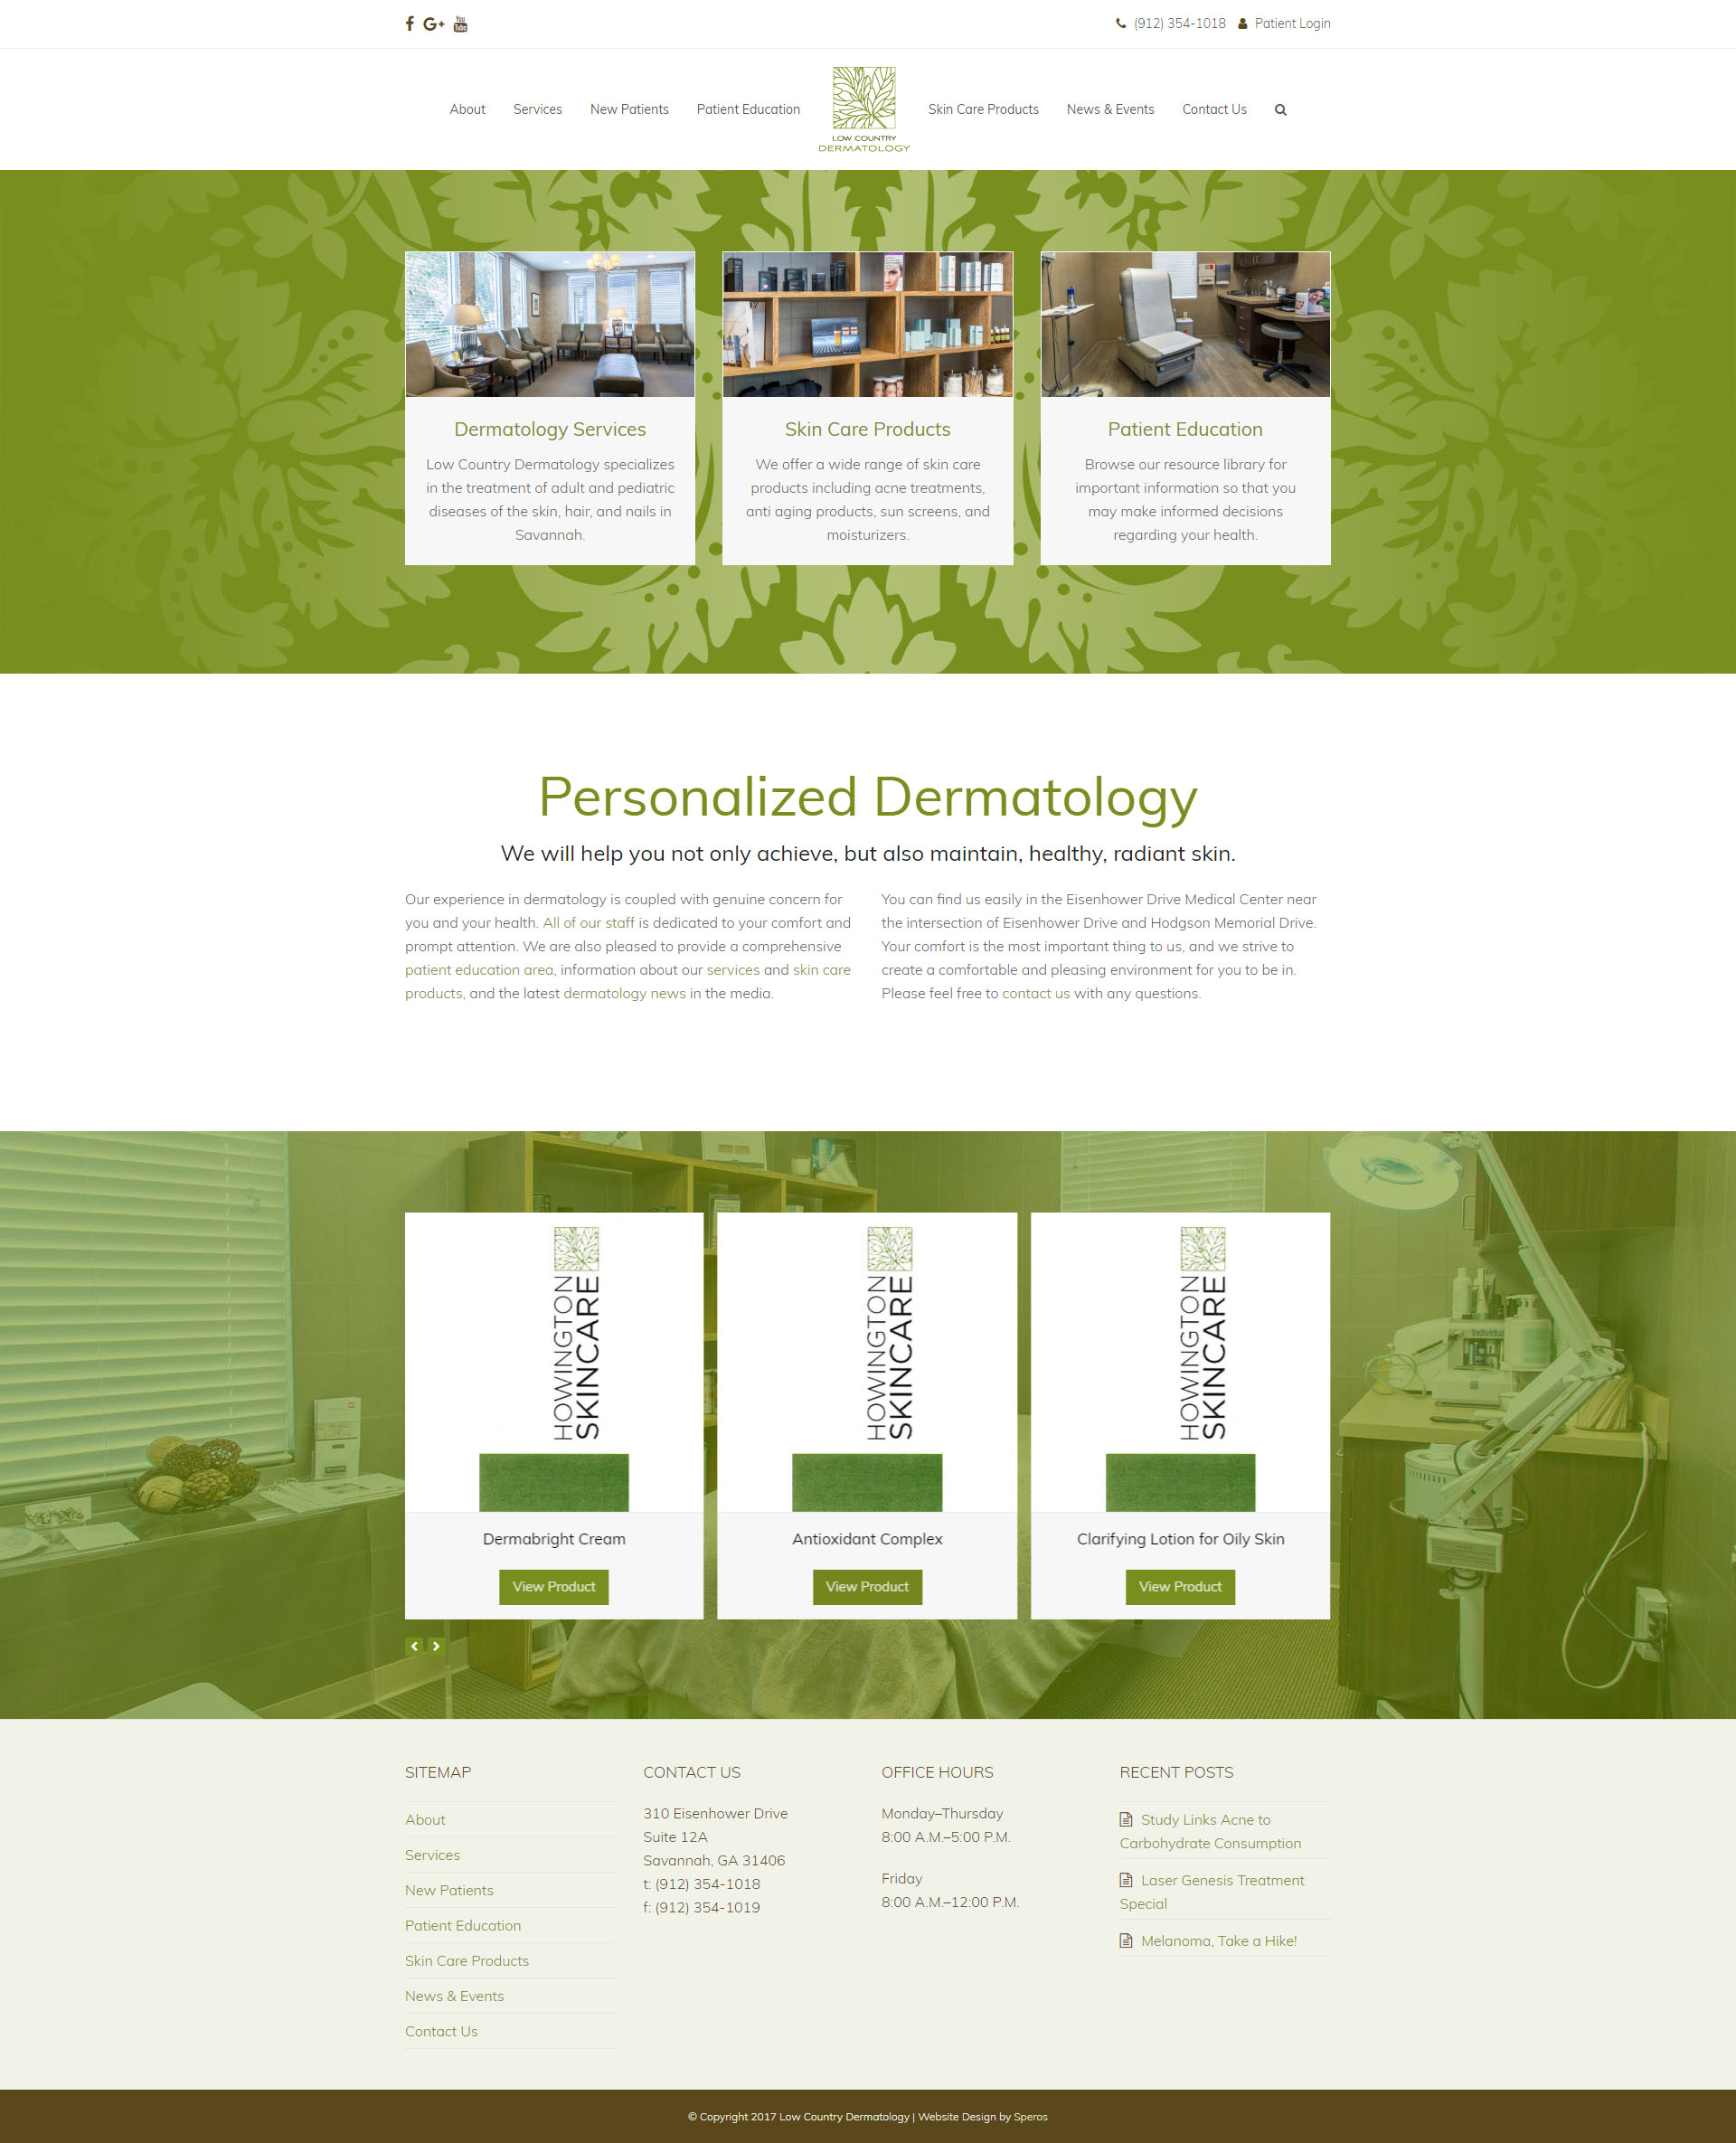 Low Country Dermatology - Speros Web Design - Savannah